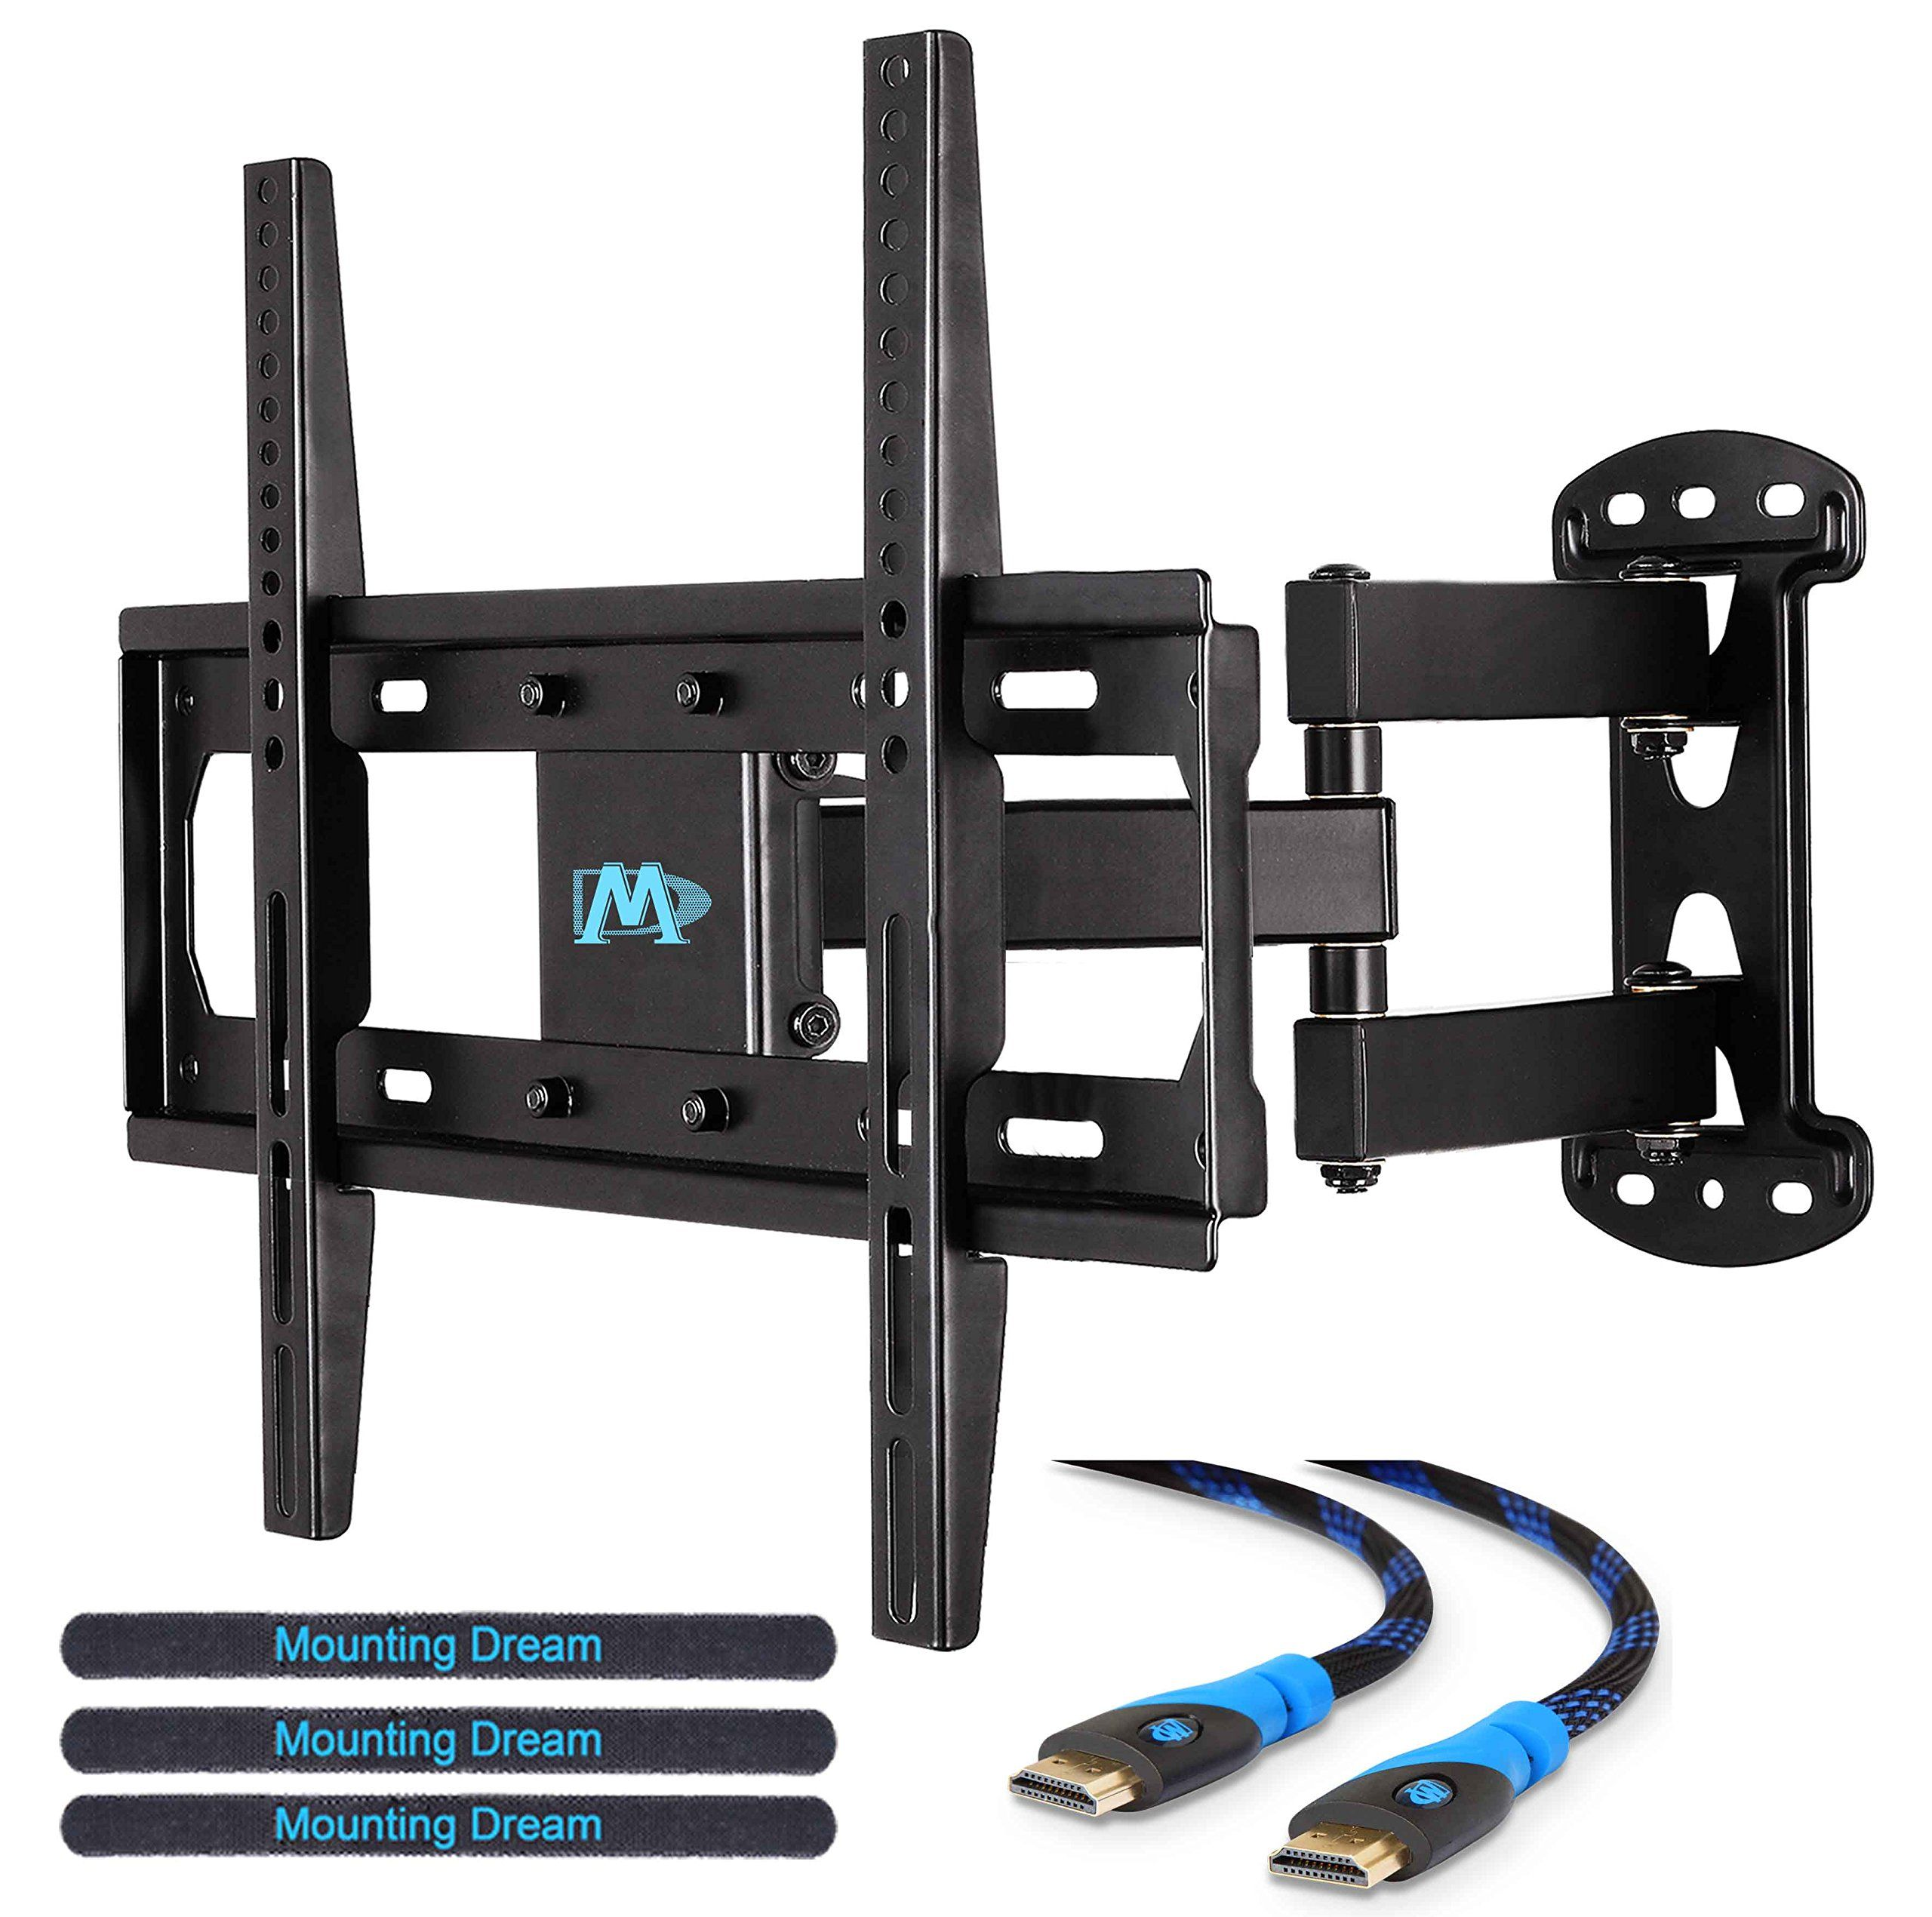 Mounting Dream Md2377 Tv Wall Mount Bracket For Most Of 26 55 Inch Led Lcd Oled And Plasma Flat Scre Wall Mounted Tv Tv Wall Mount Bracket Wall Mount Bracket